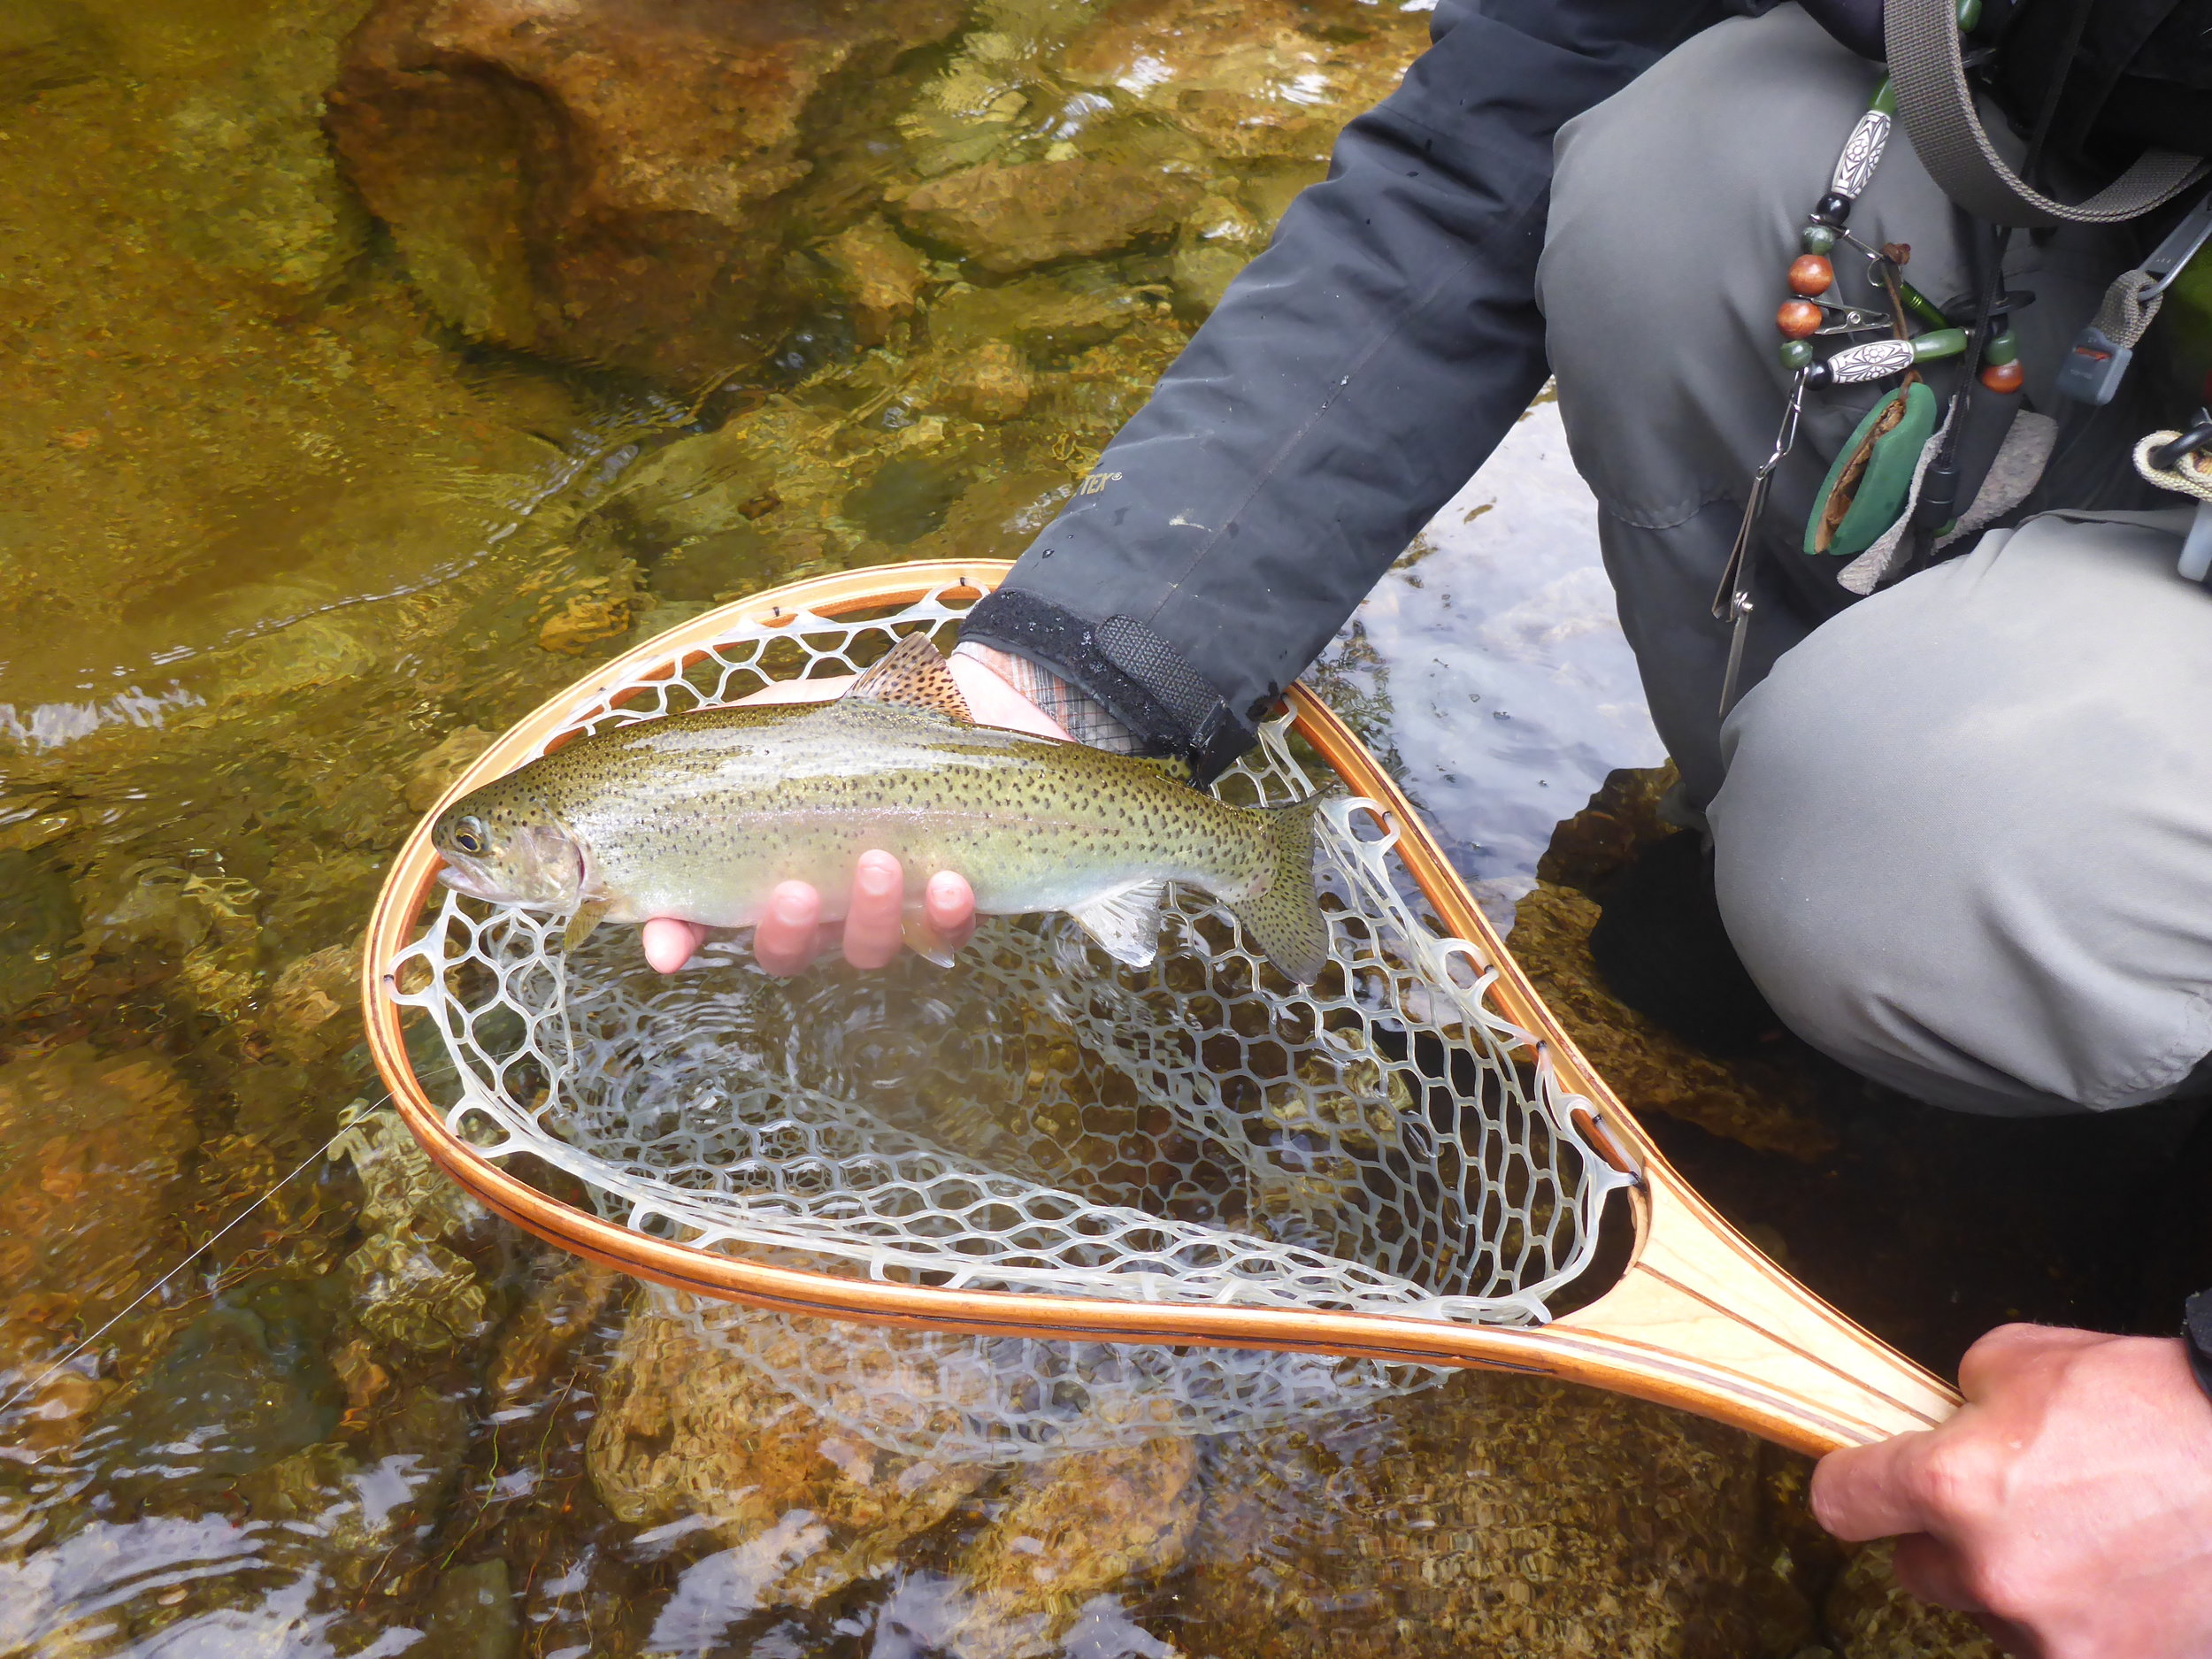 Wild rainbow trout taken from a small mountain stream mid-July 2016.